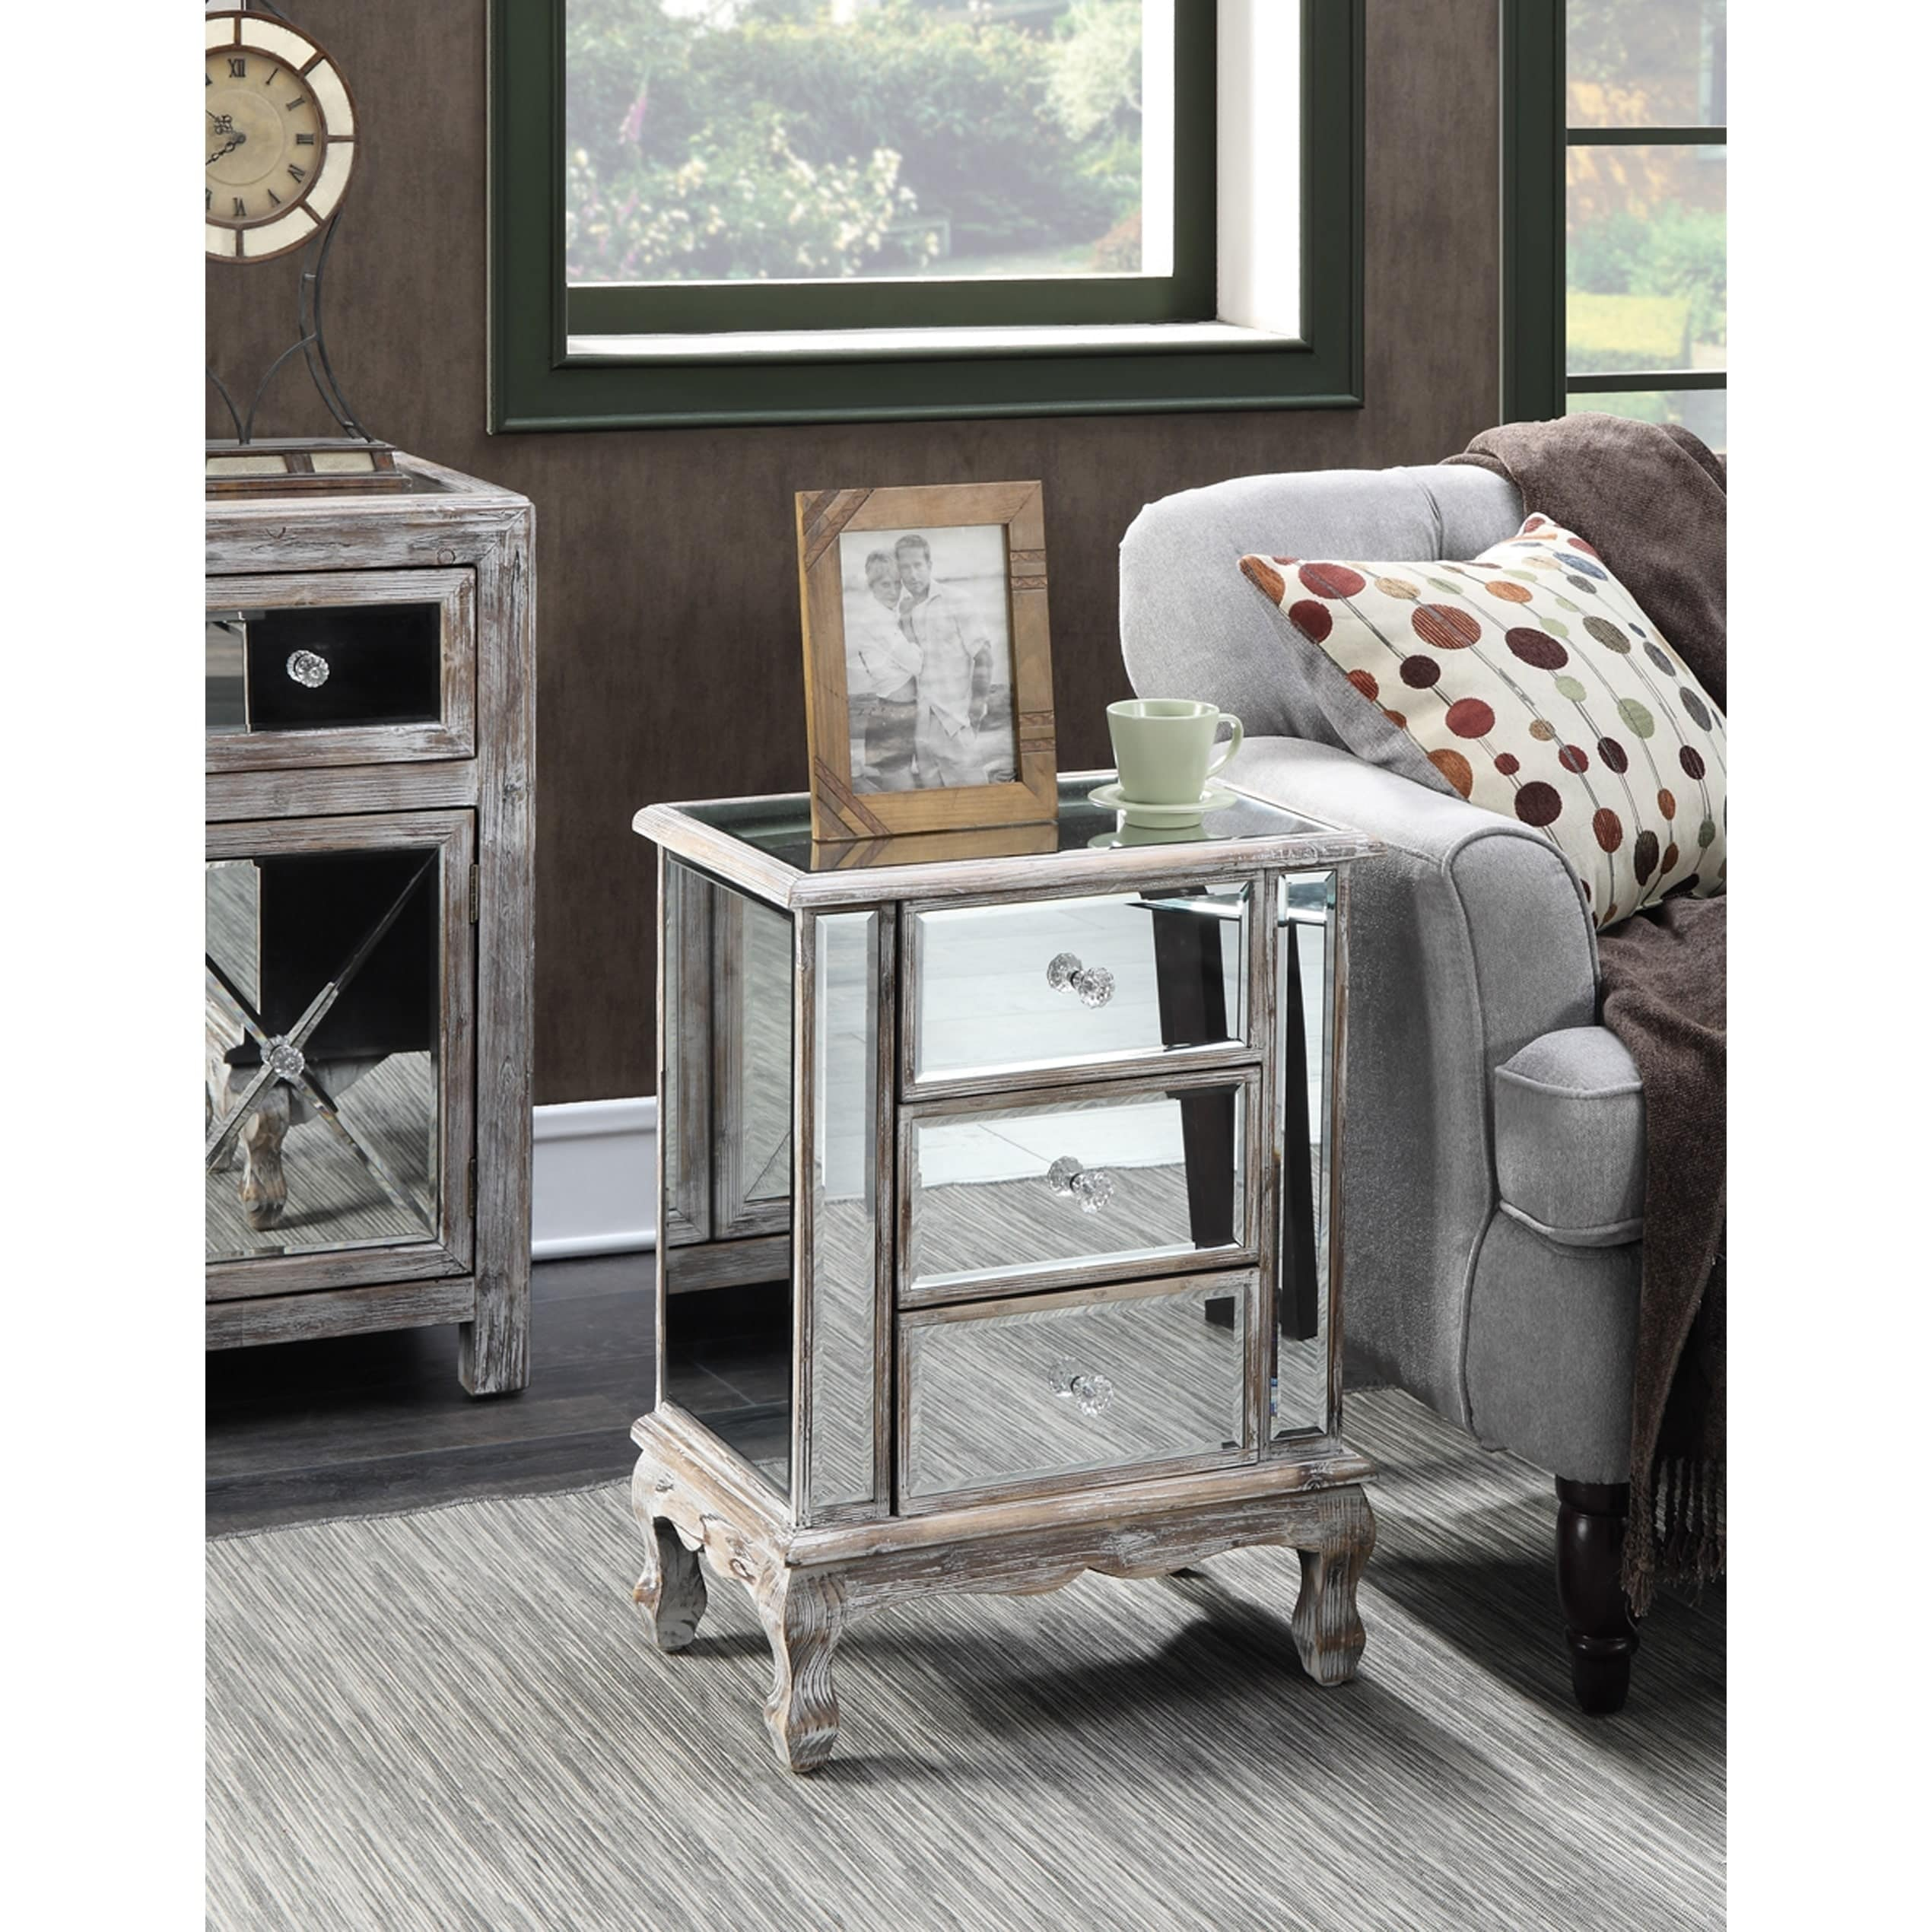 Shop Gold Coast Vineyard 3 Drawer Mirrored End Table